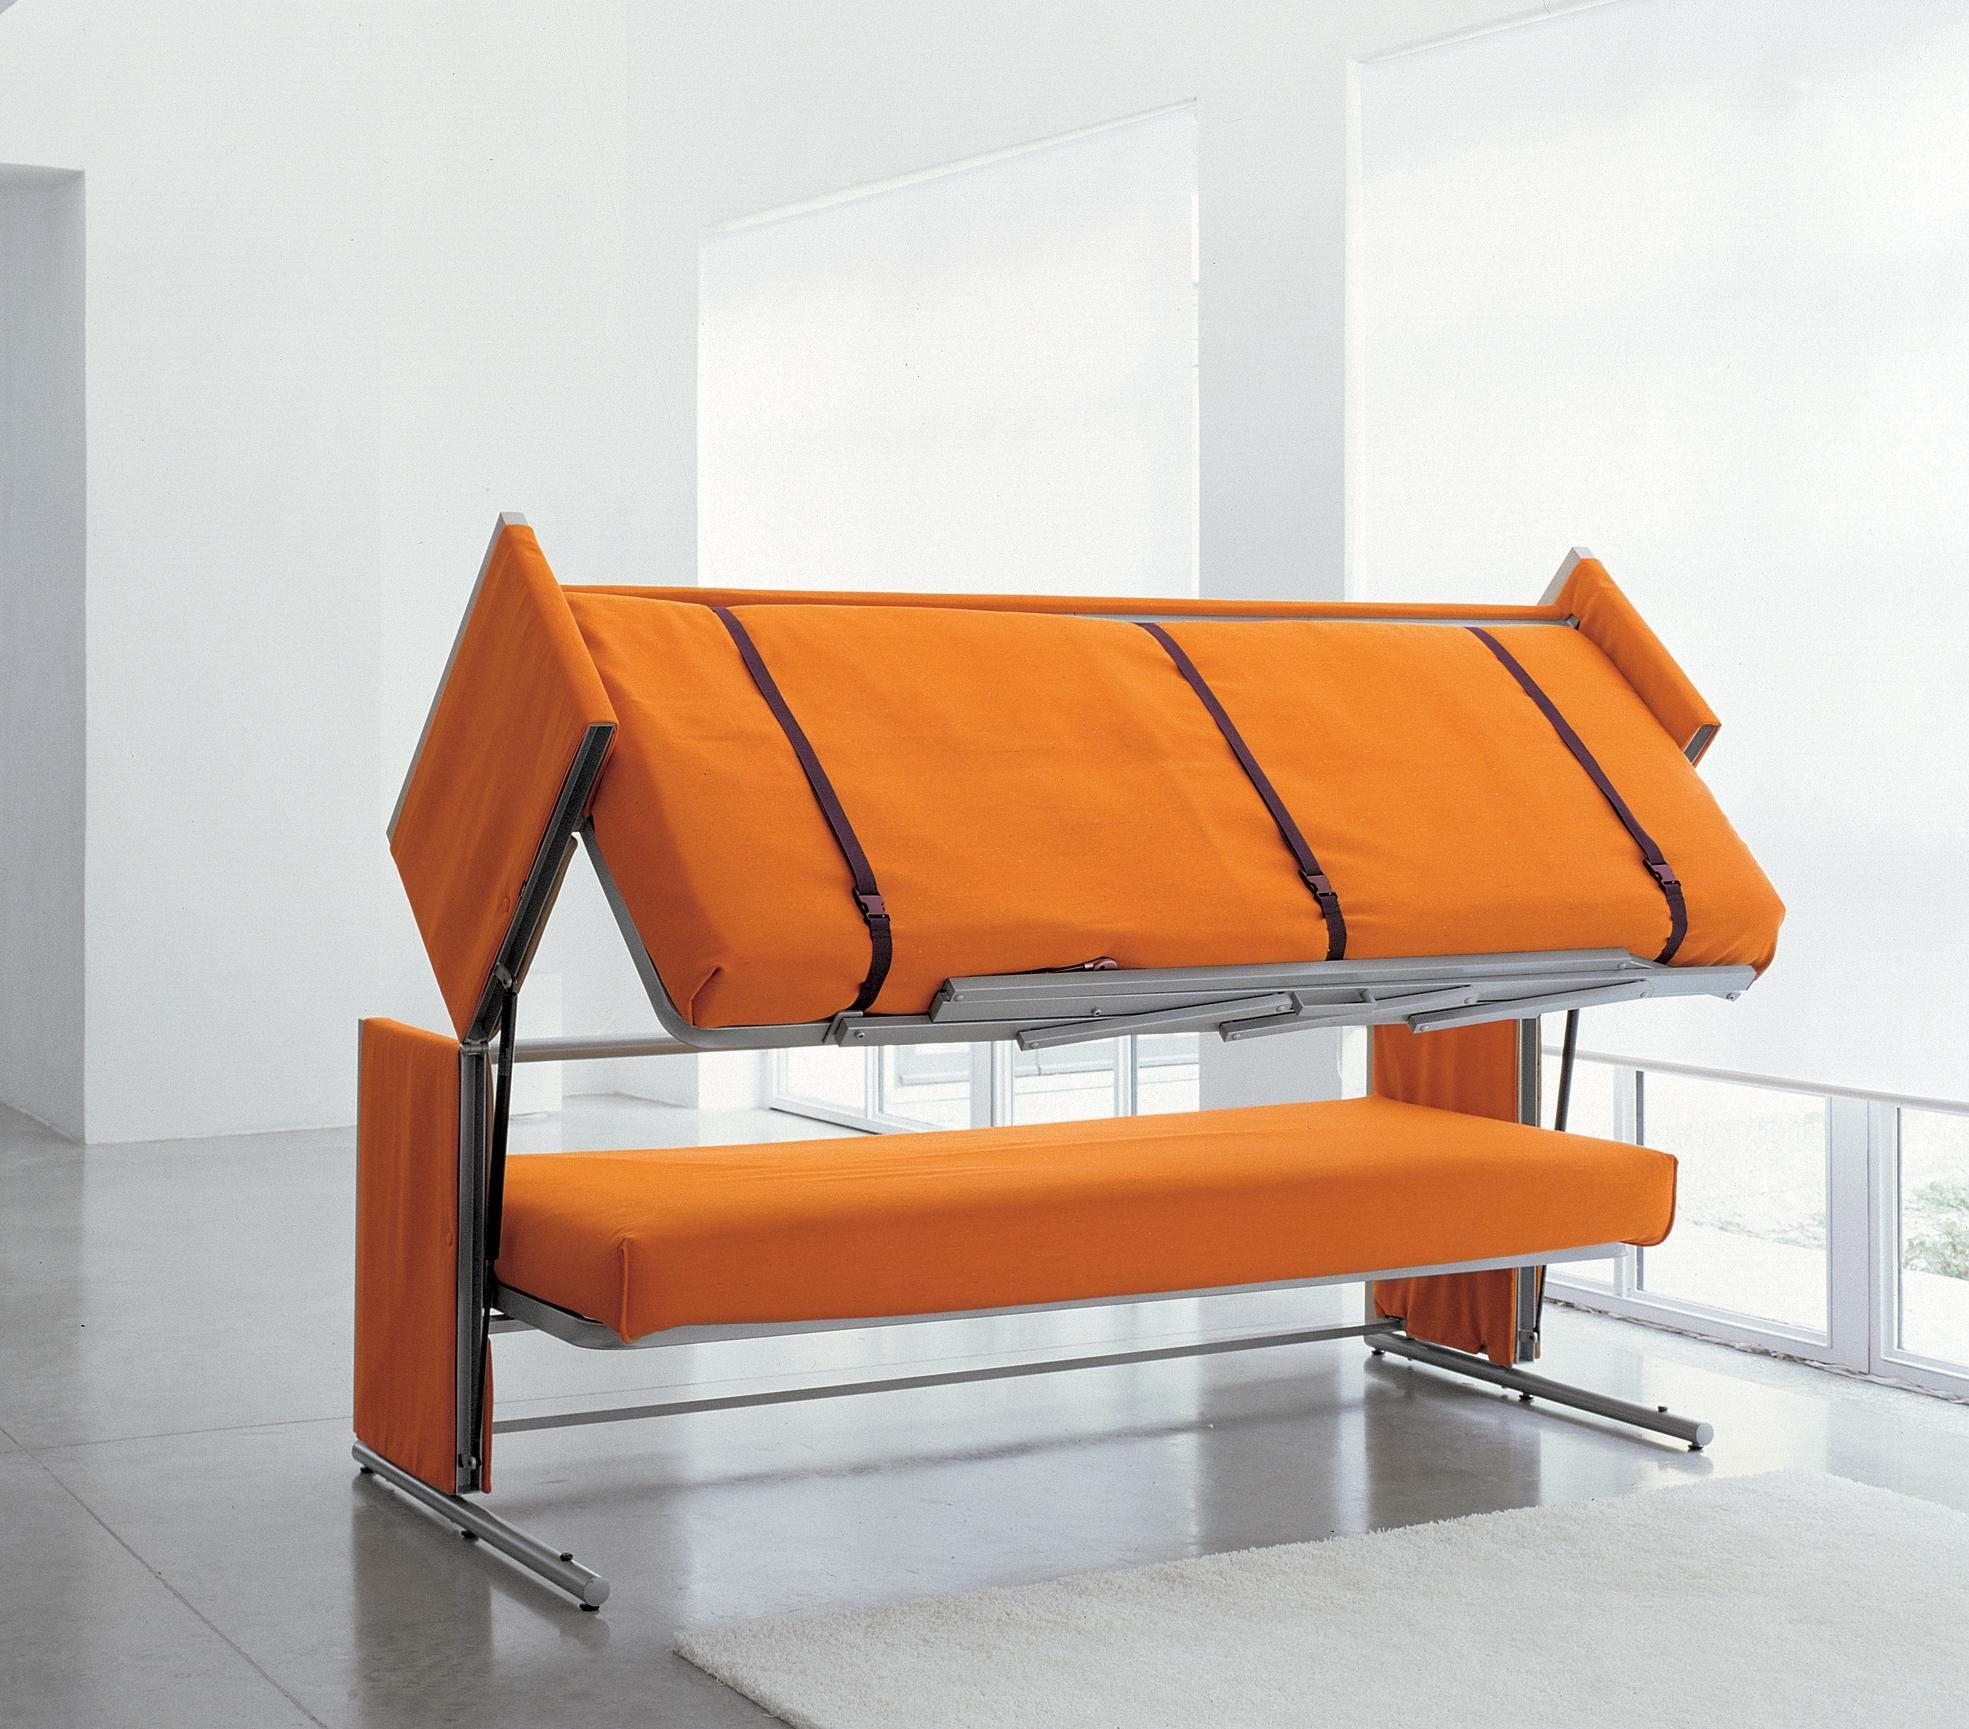 30 Creative Space Saving Furniture Designs For Small Homes Intended For Collapsible Sofas (Image 1 of 20)